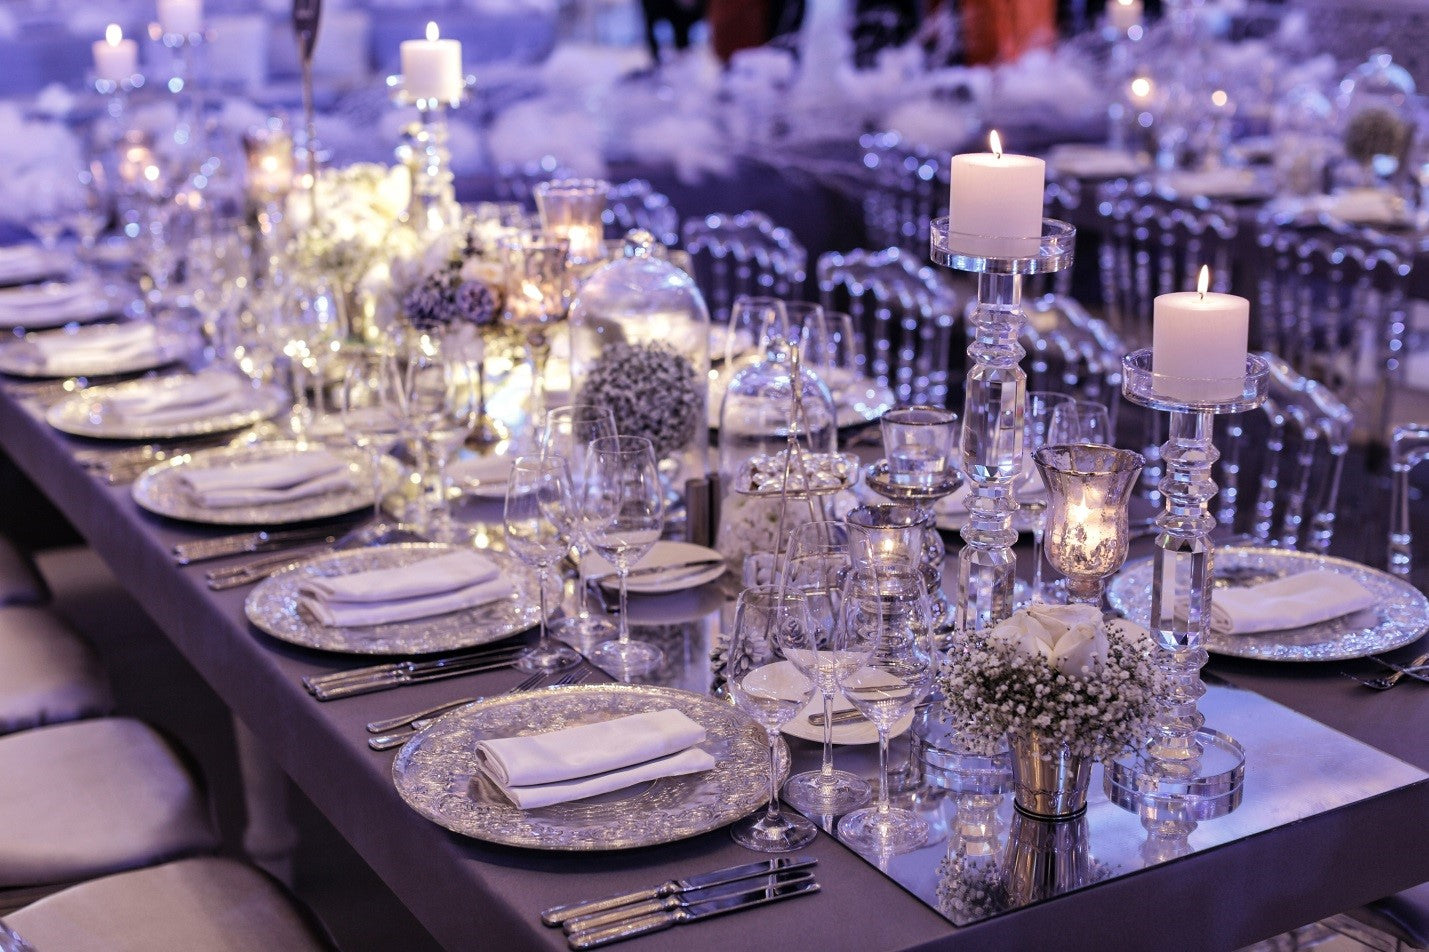 purple themed table setting with candle centerpieces